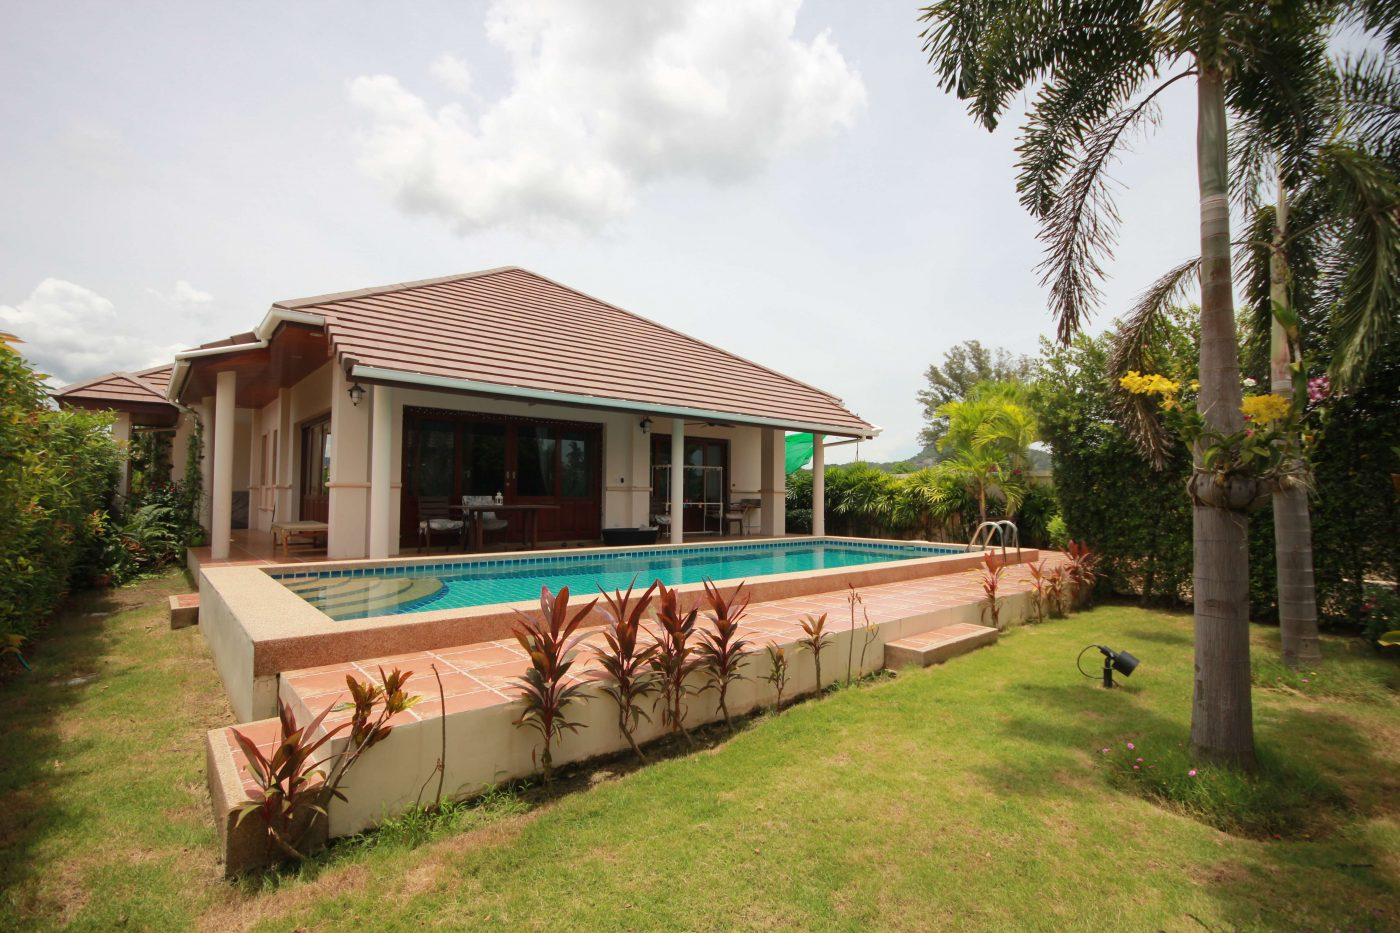 HOT DEAL Pool Villa at Hillside Hamlet 5 for Sale at Hua Hin District, Prachuap Khiri Khan, Thailand